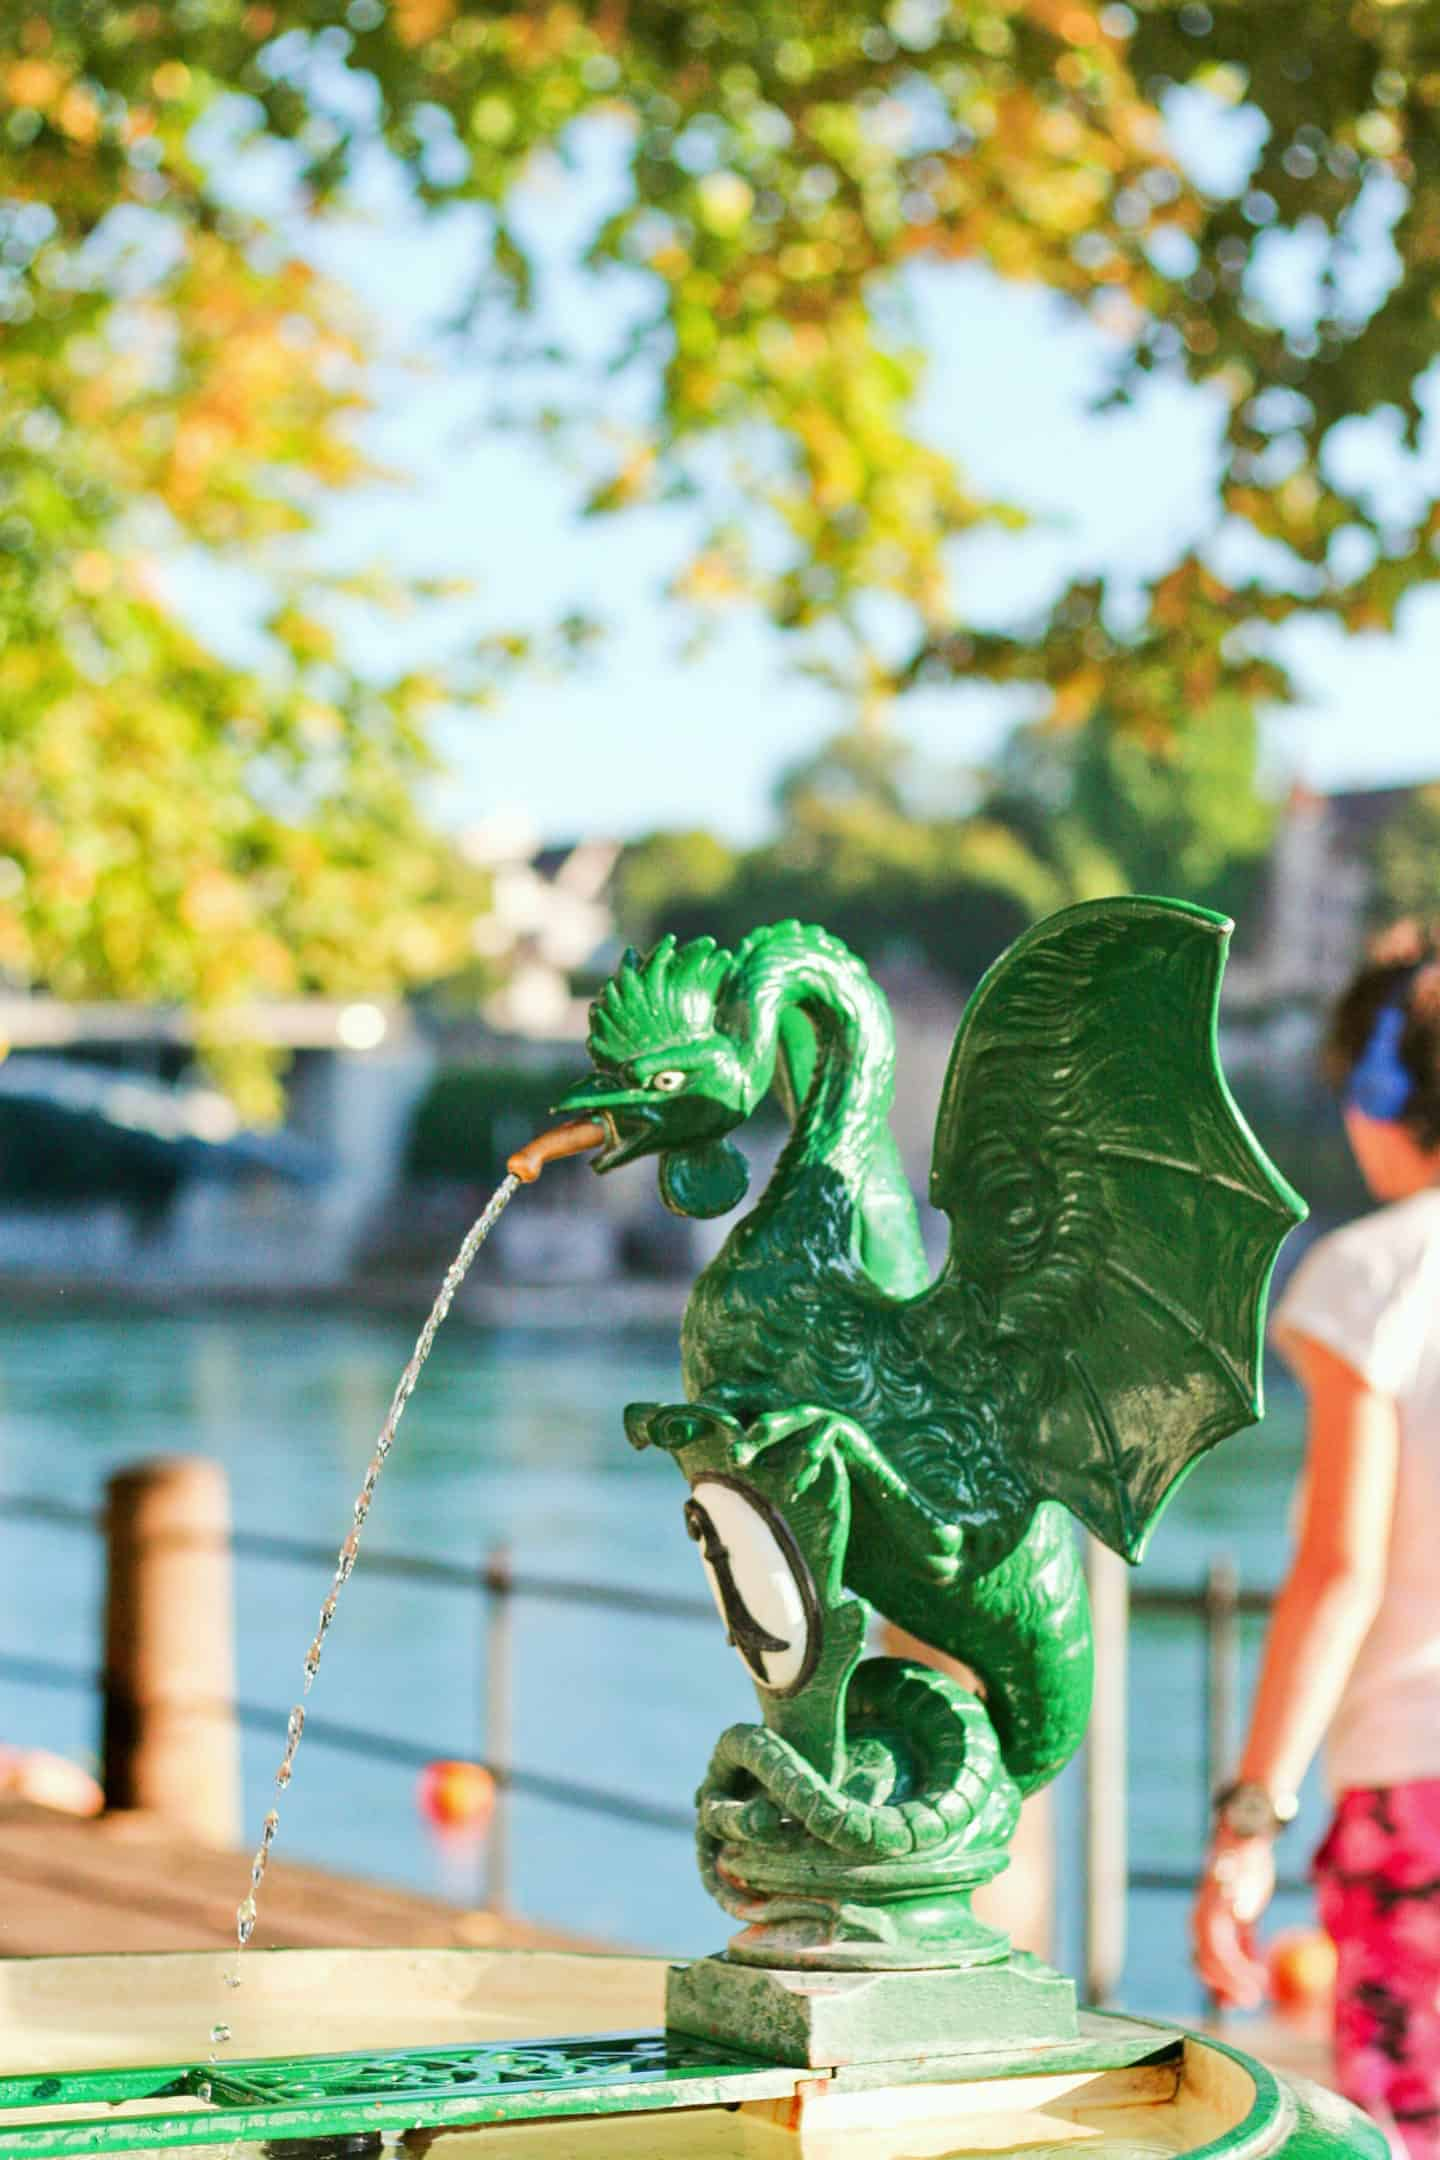 Basilisk water fountain in Basel